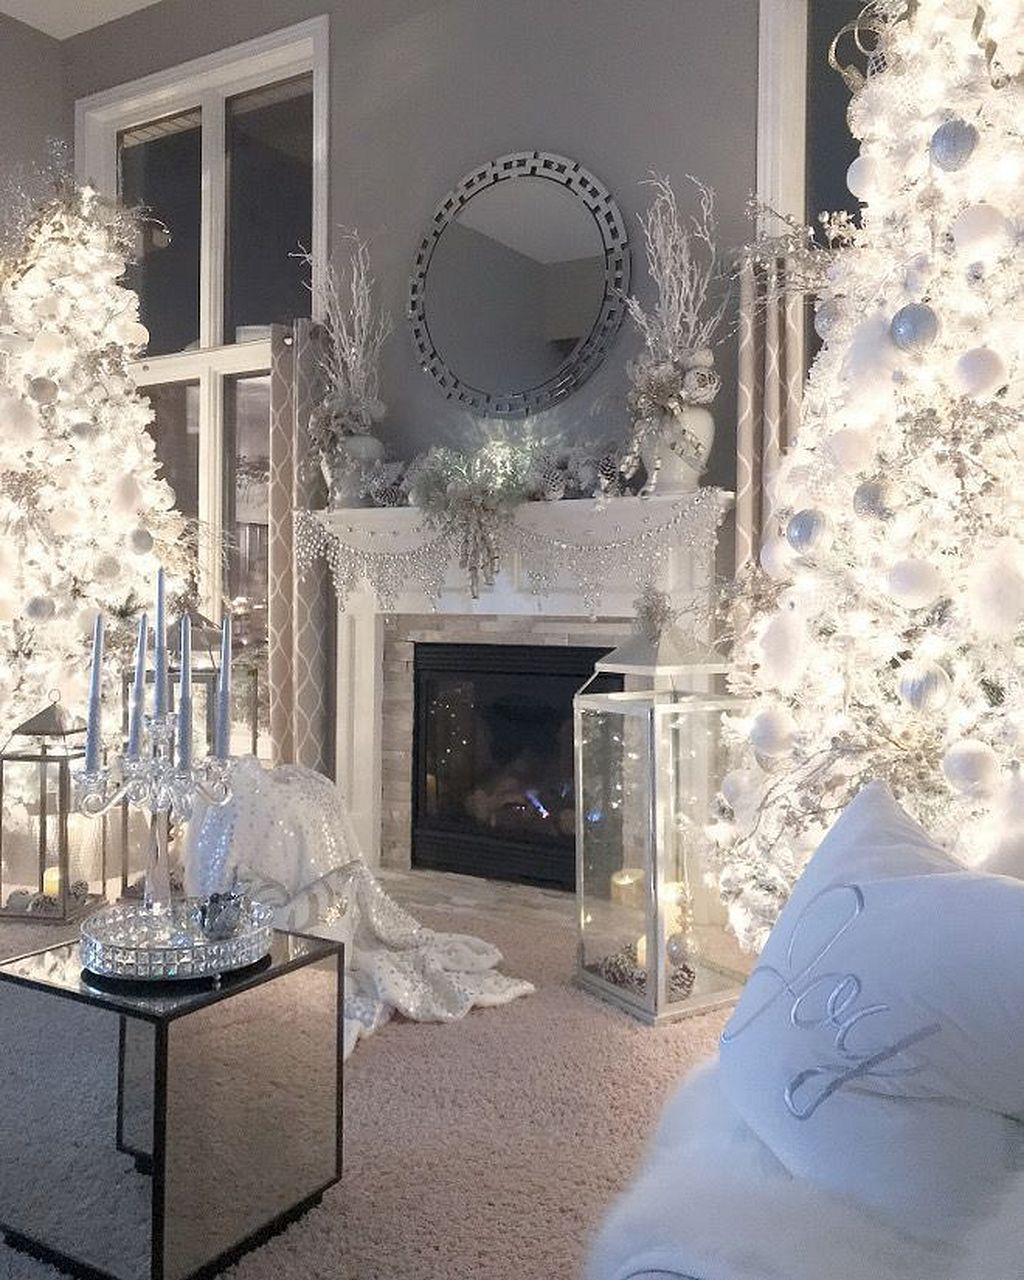 Apartment Christmas Decorations Indoor.49 Christmas Decoration Ideas For Apartment Living Room